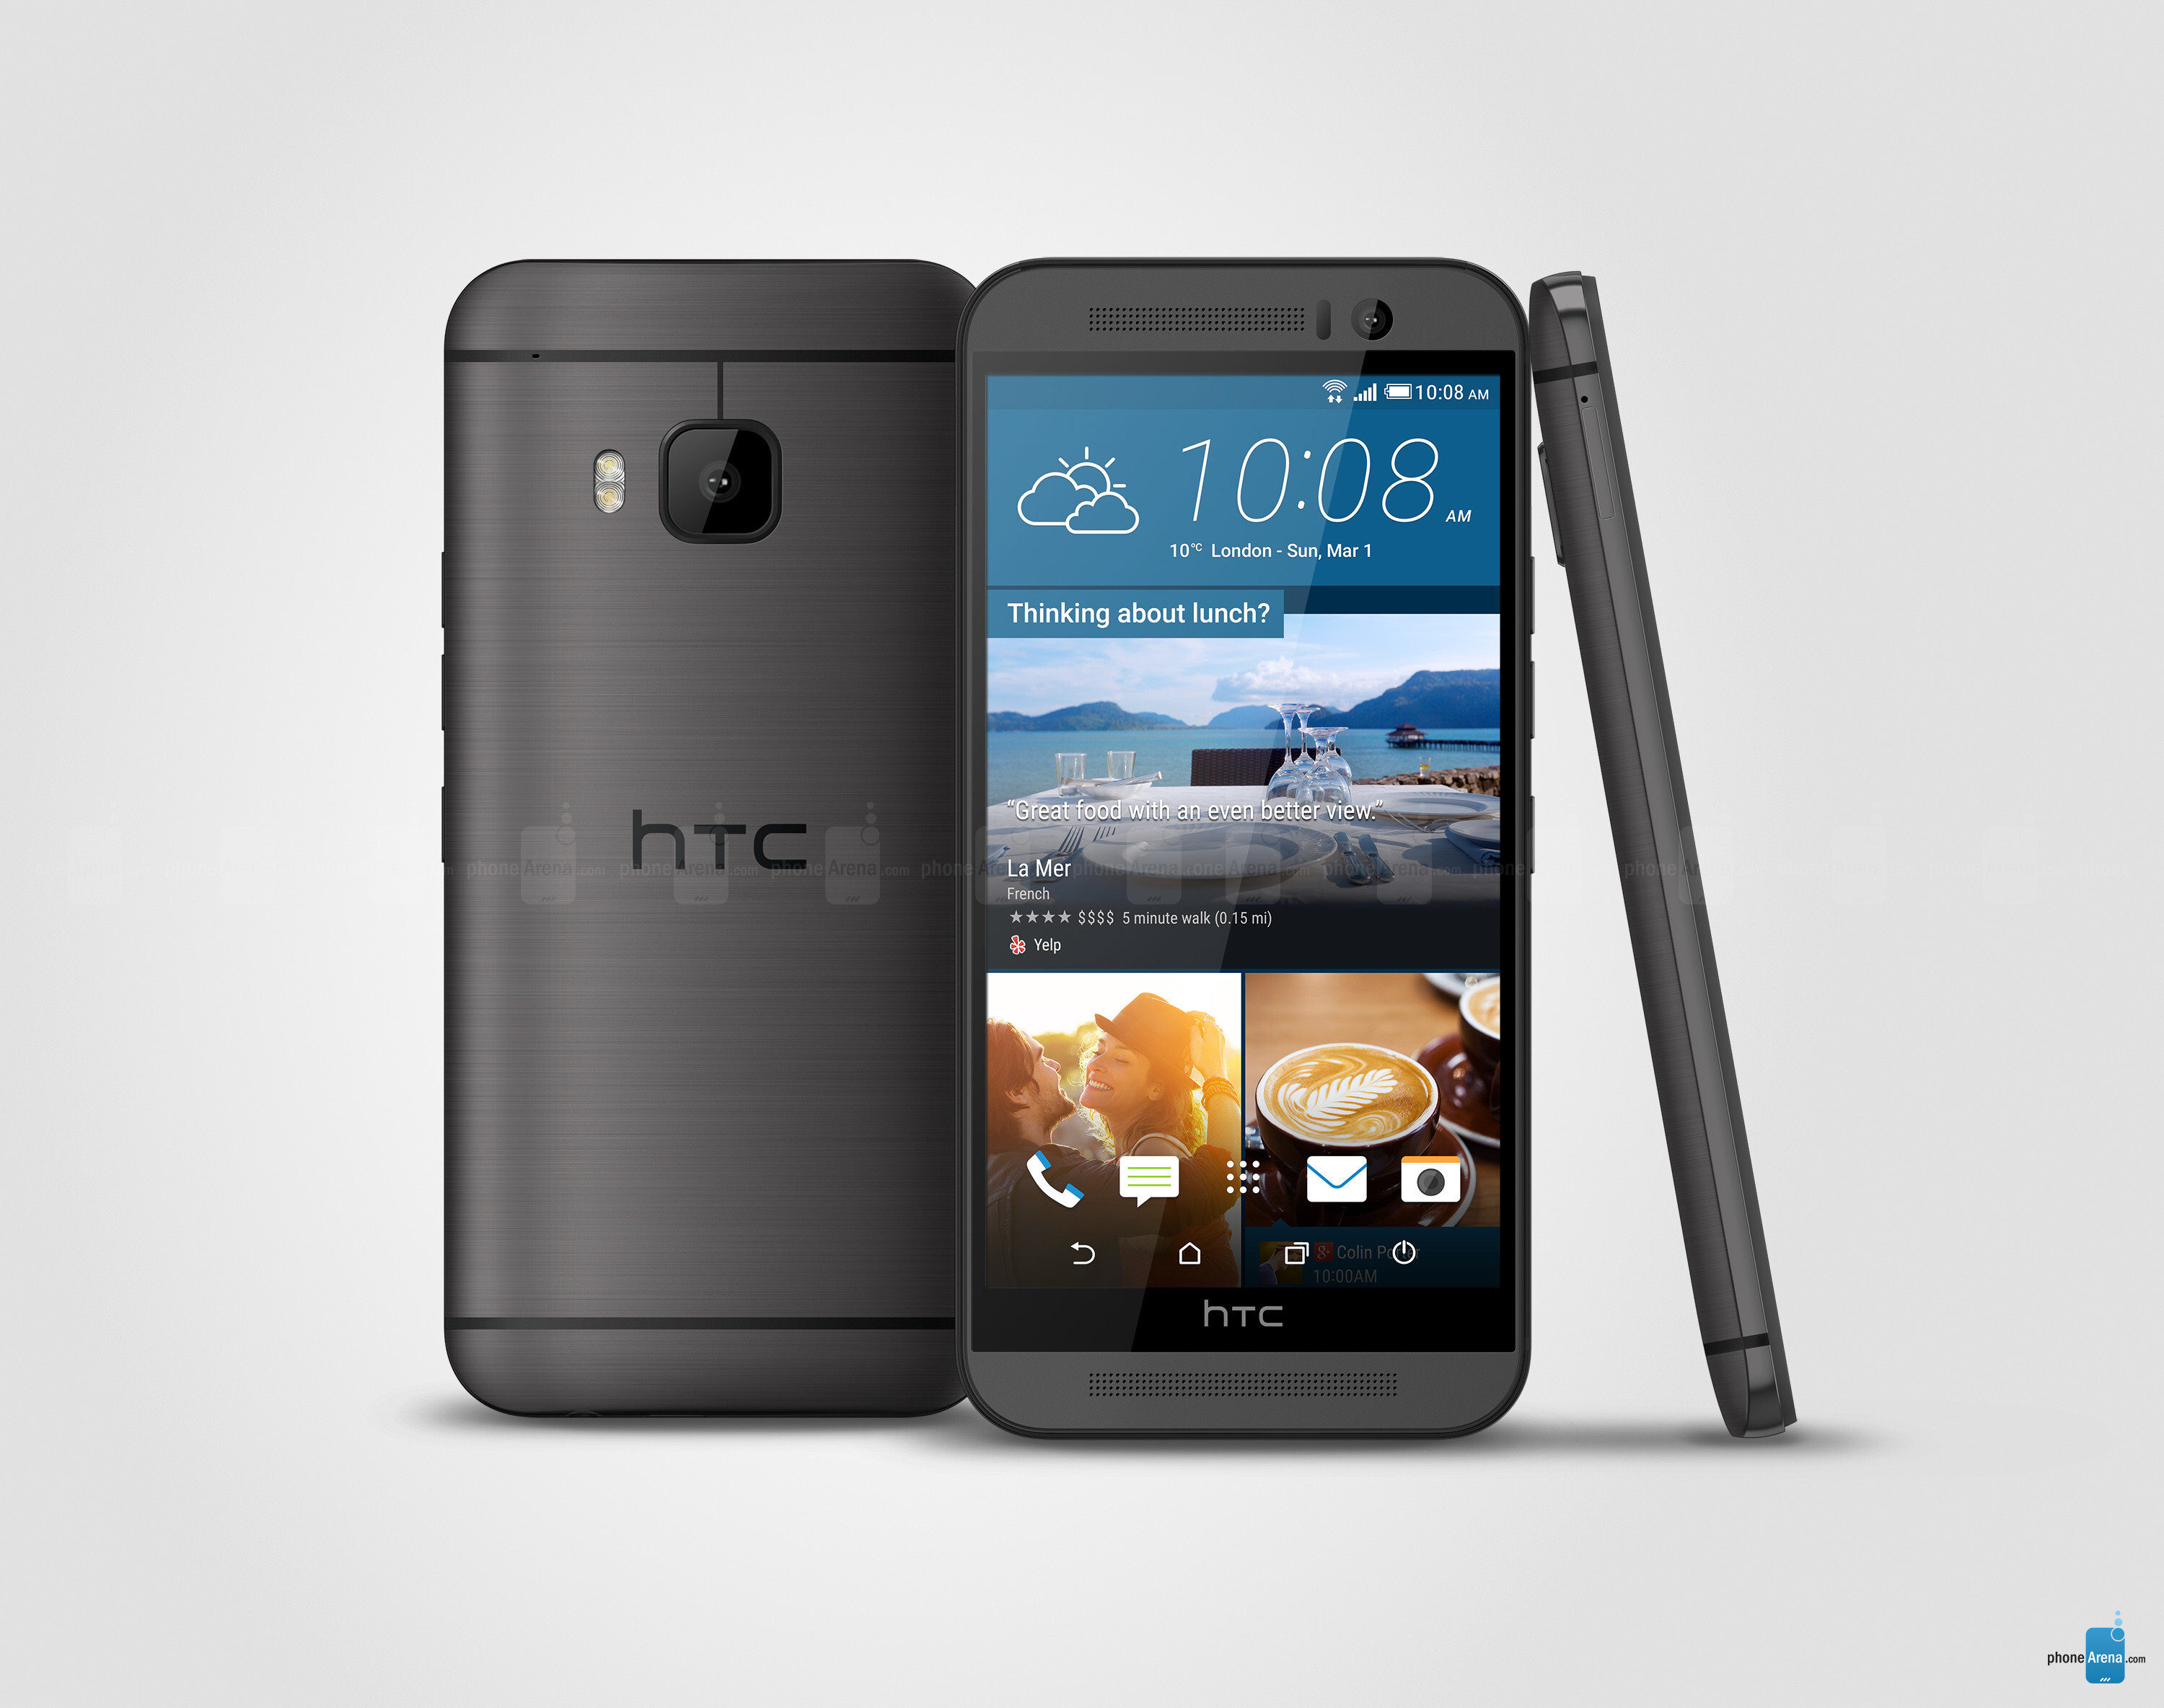 htc one m9 owners manual